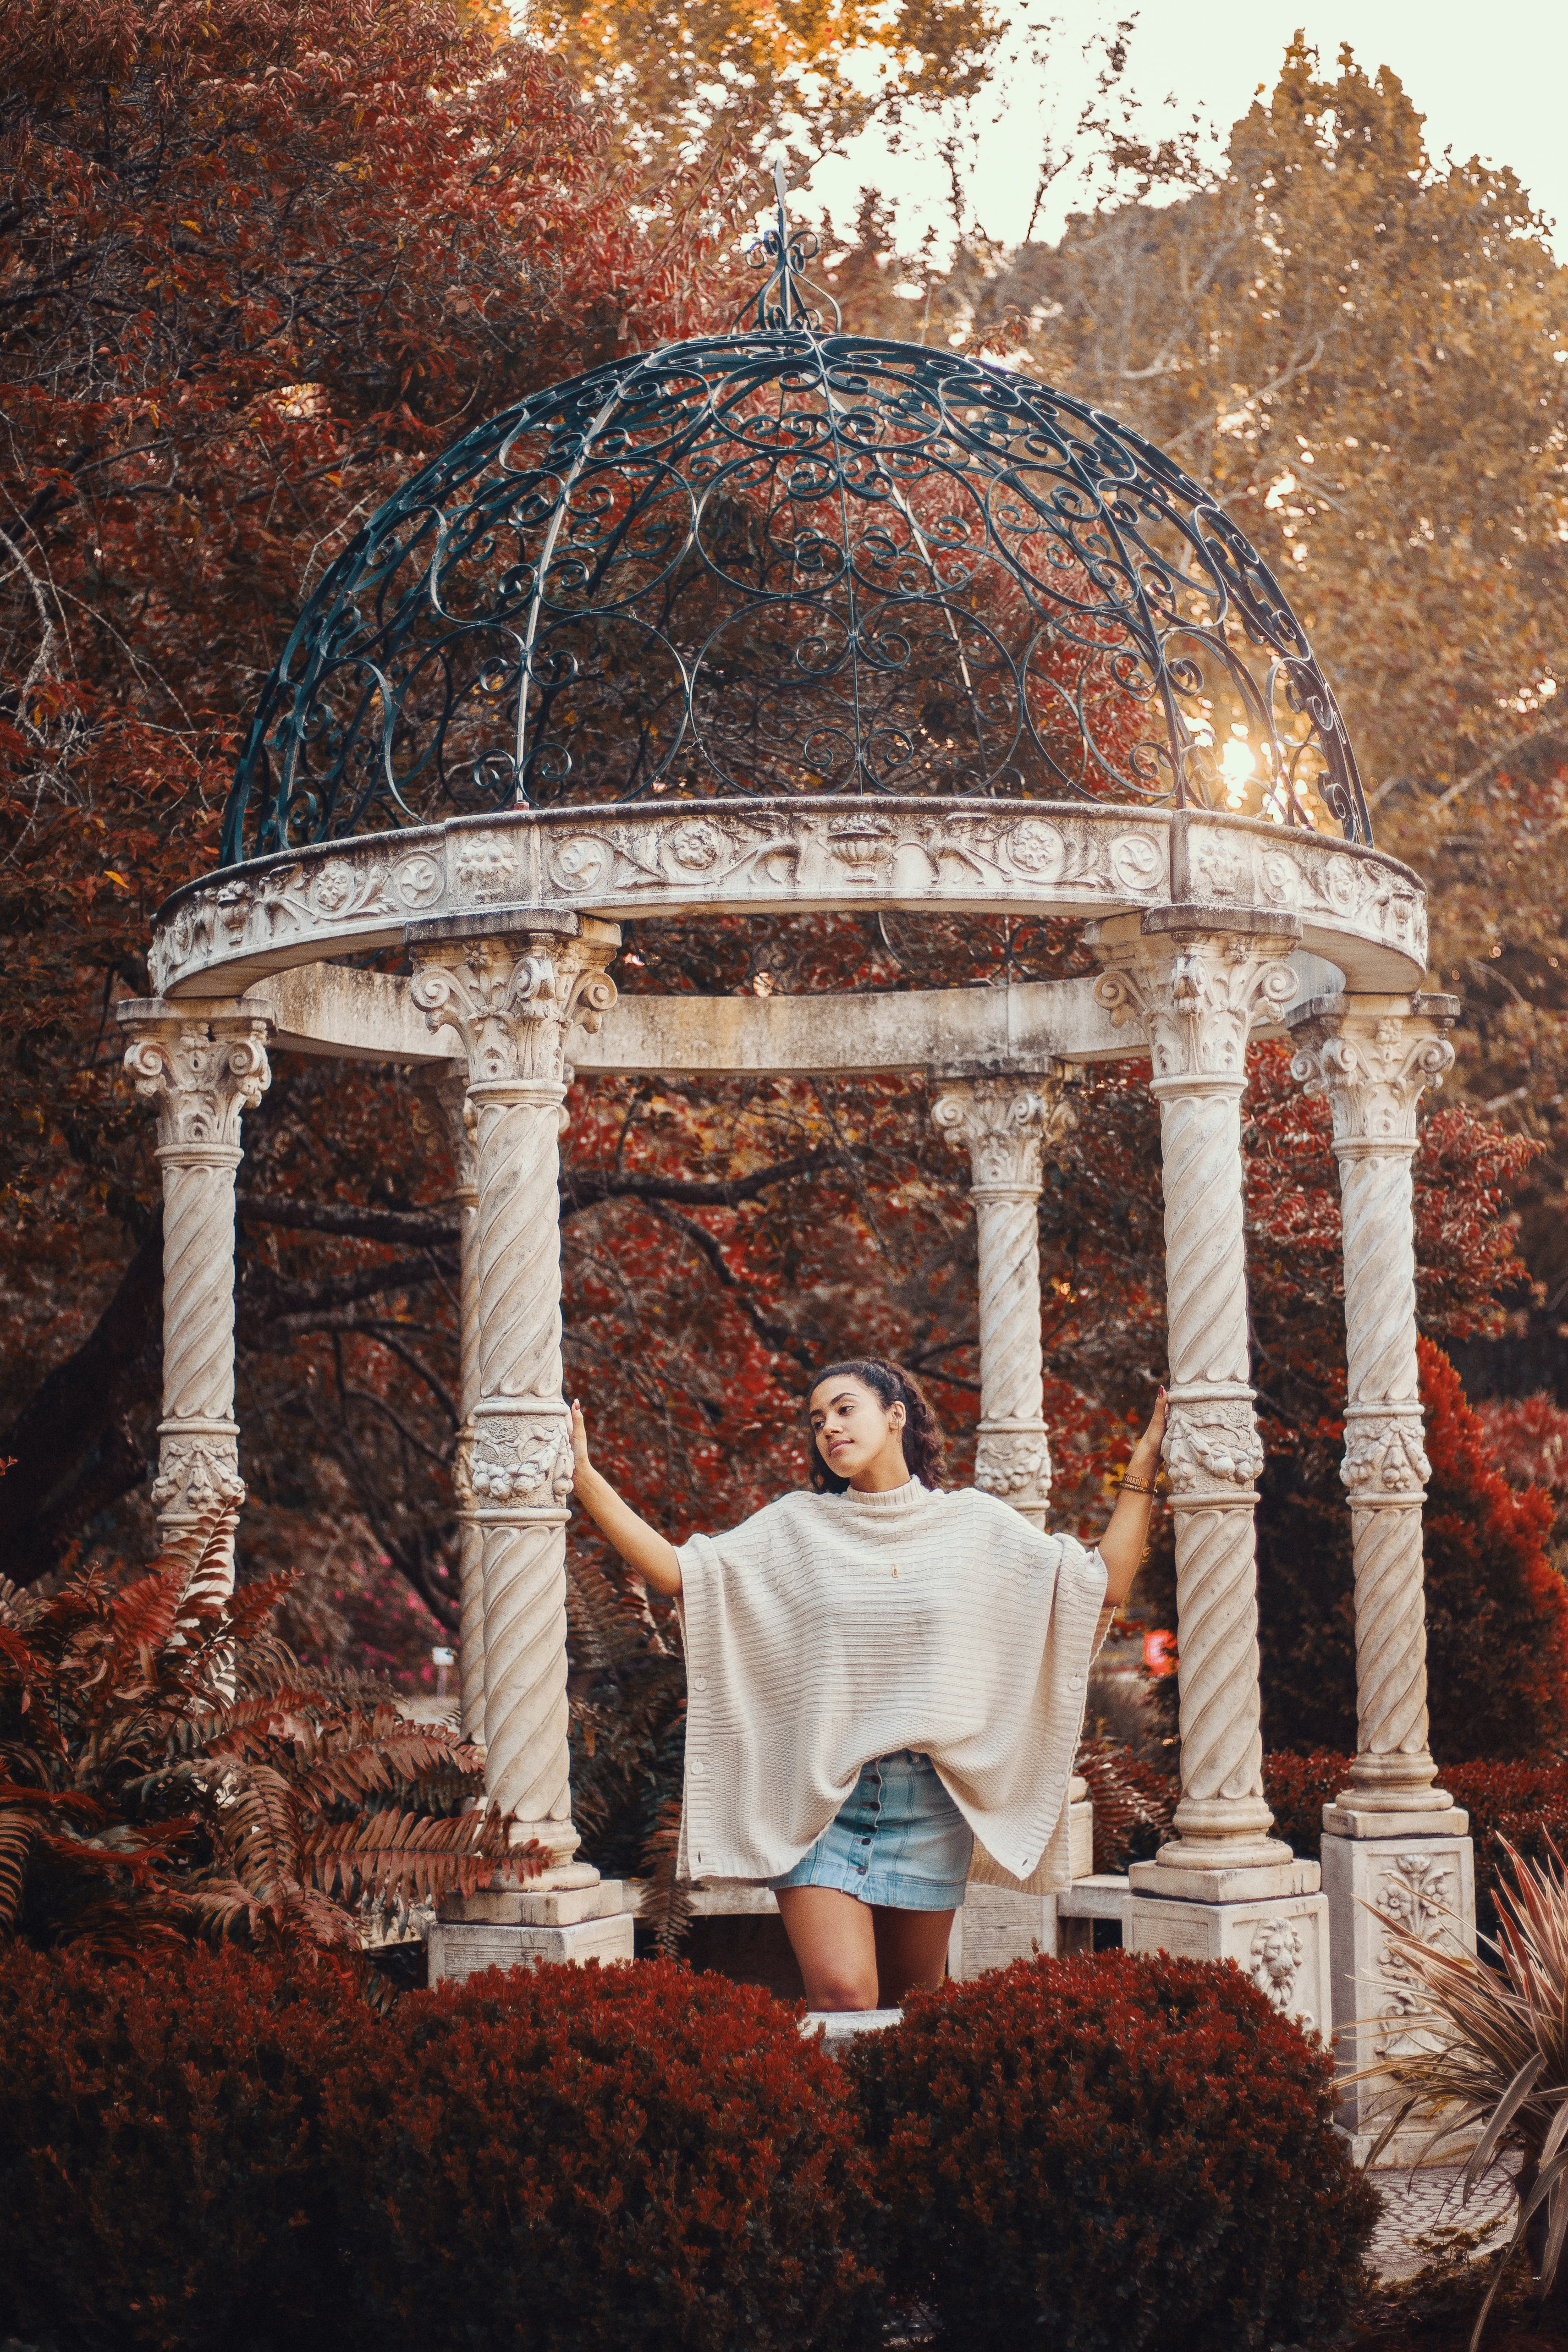 photography of woman holding gazebo post